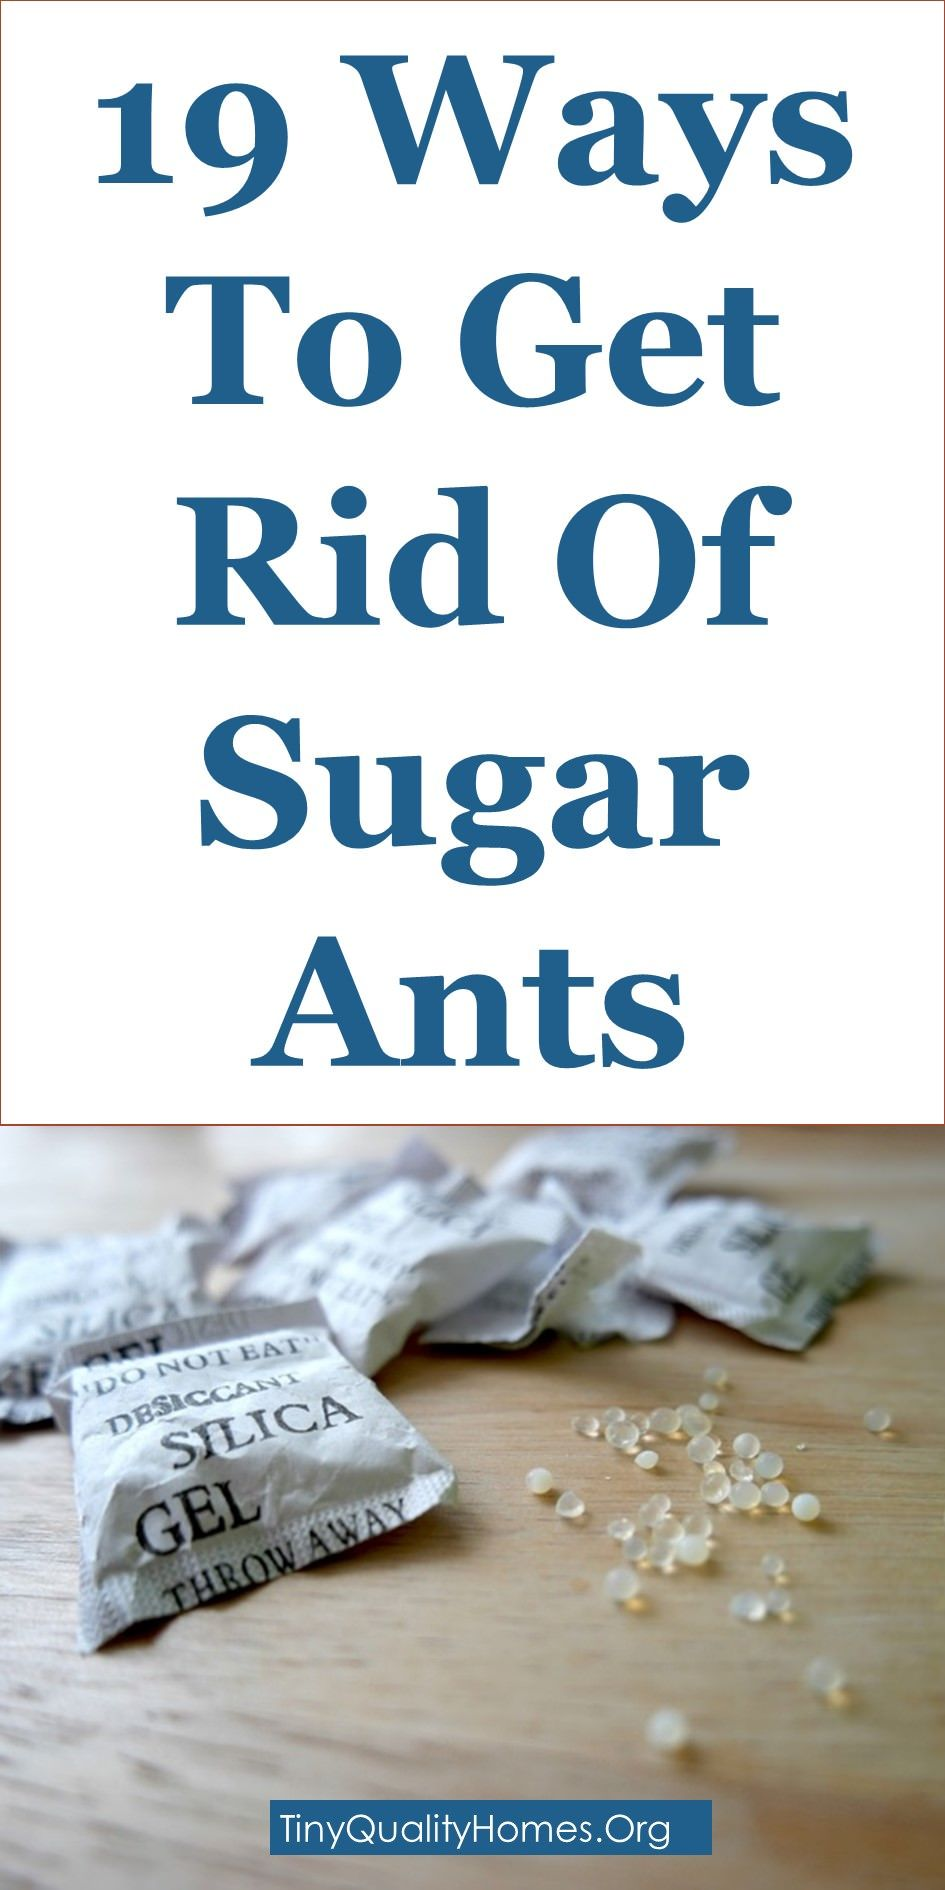 19 Ways To Get Rid Of Sugar Ants Naturally | Home Remedies ...